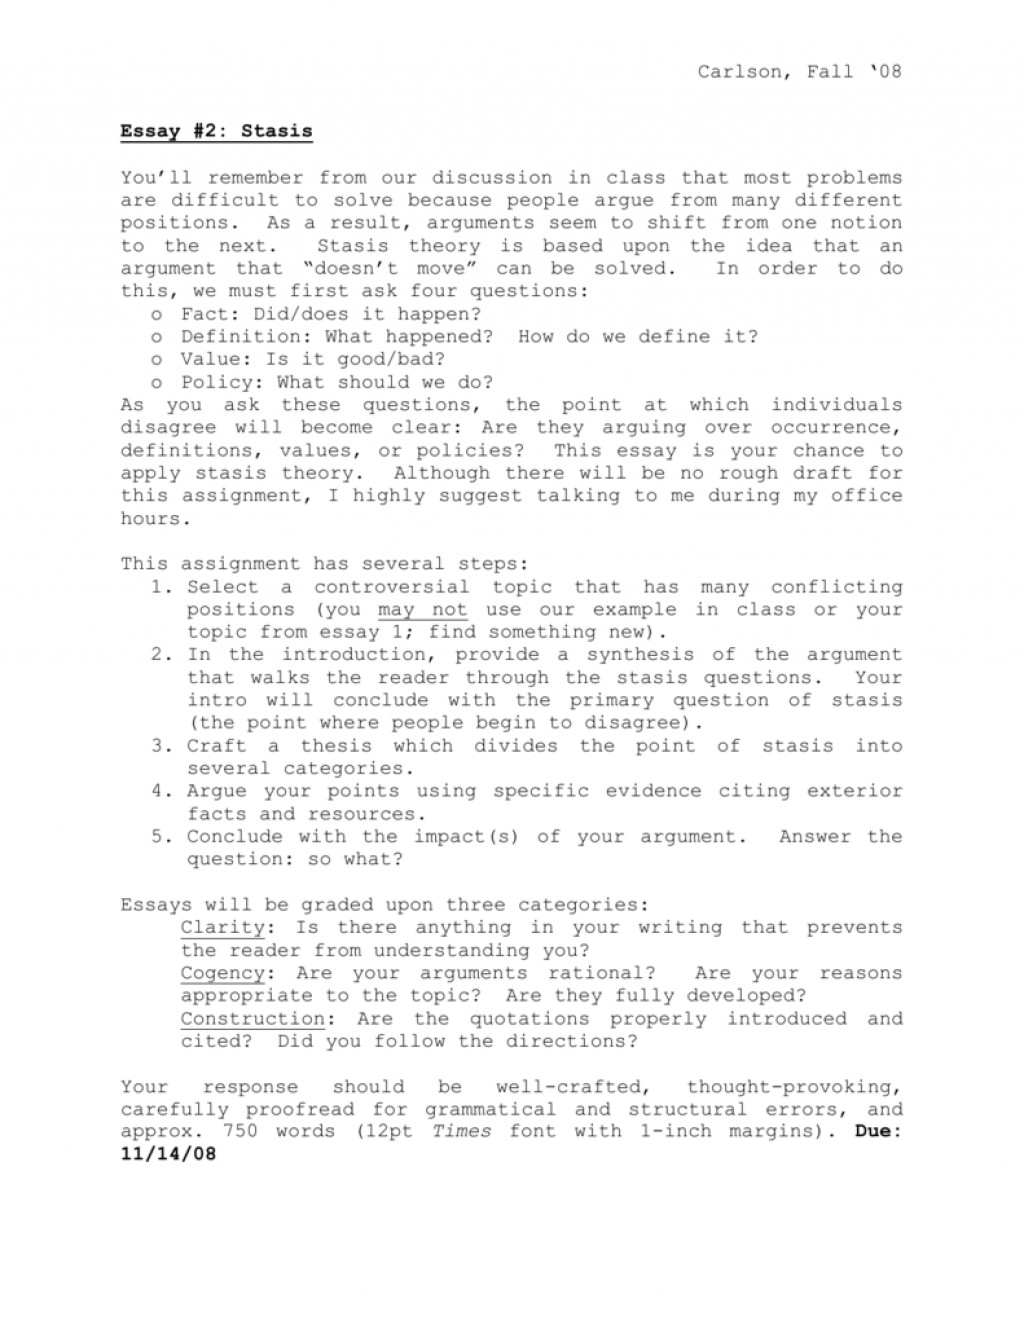 007 007882520 2 Word Essay Excellent 750 On Respect Double Spaced About Yourself Large